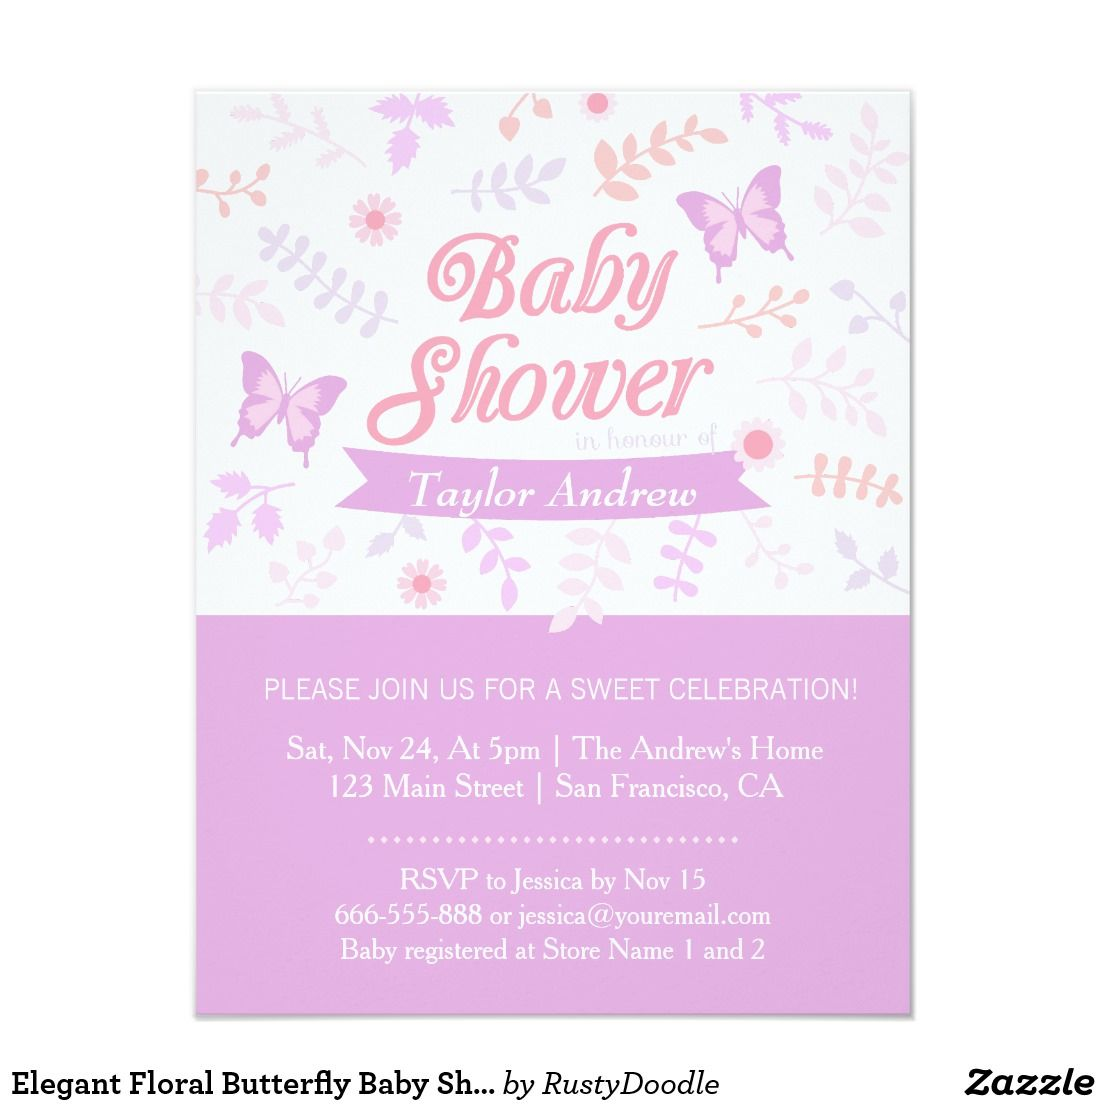 Elegant Floral Butterfly Baby Shower Invitations Planning a baby ...